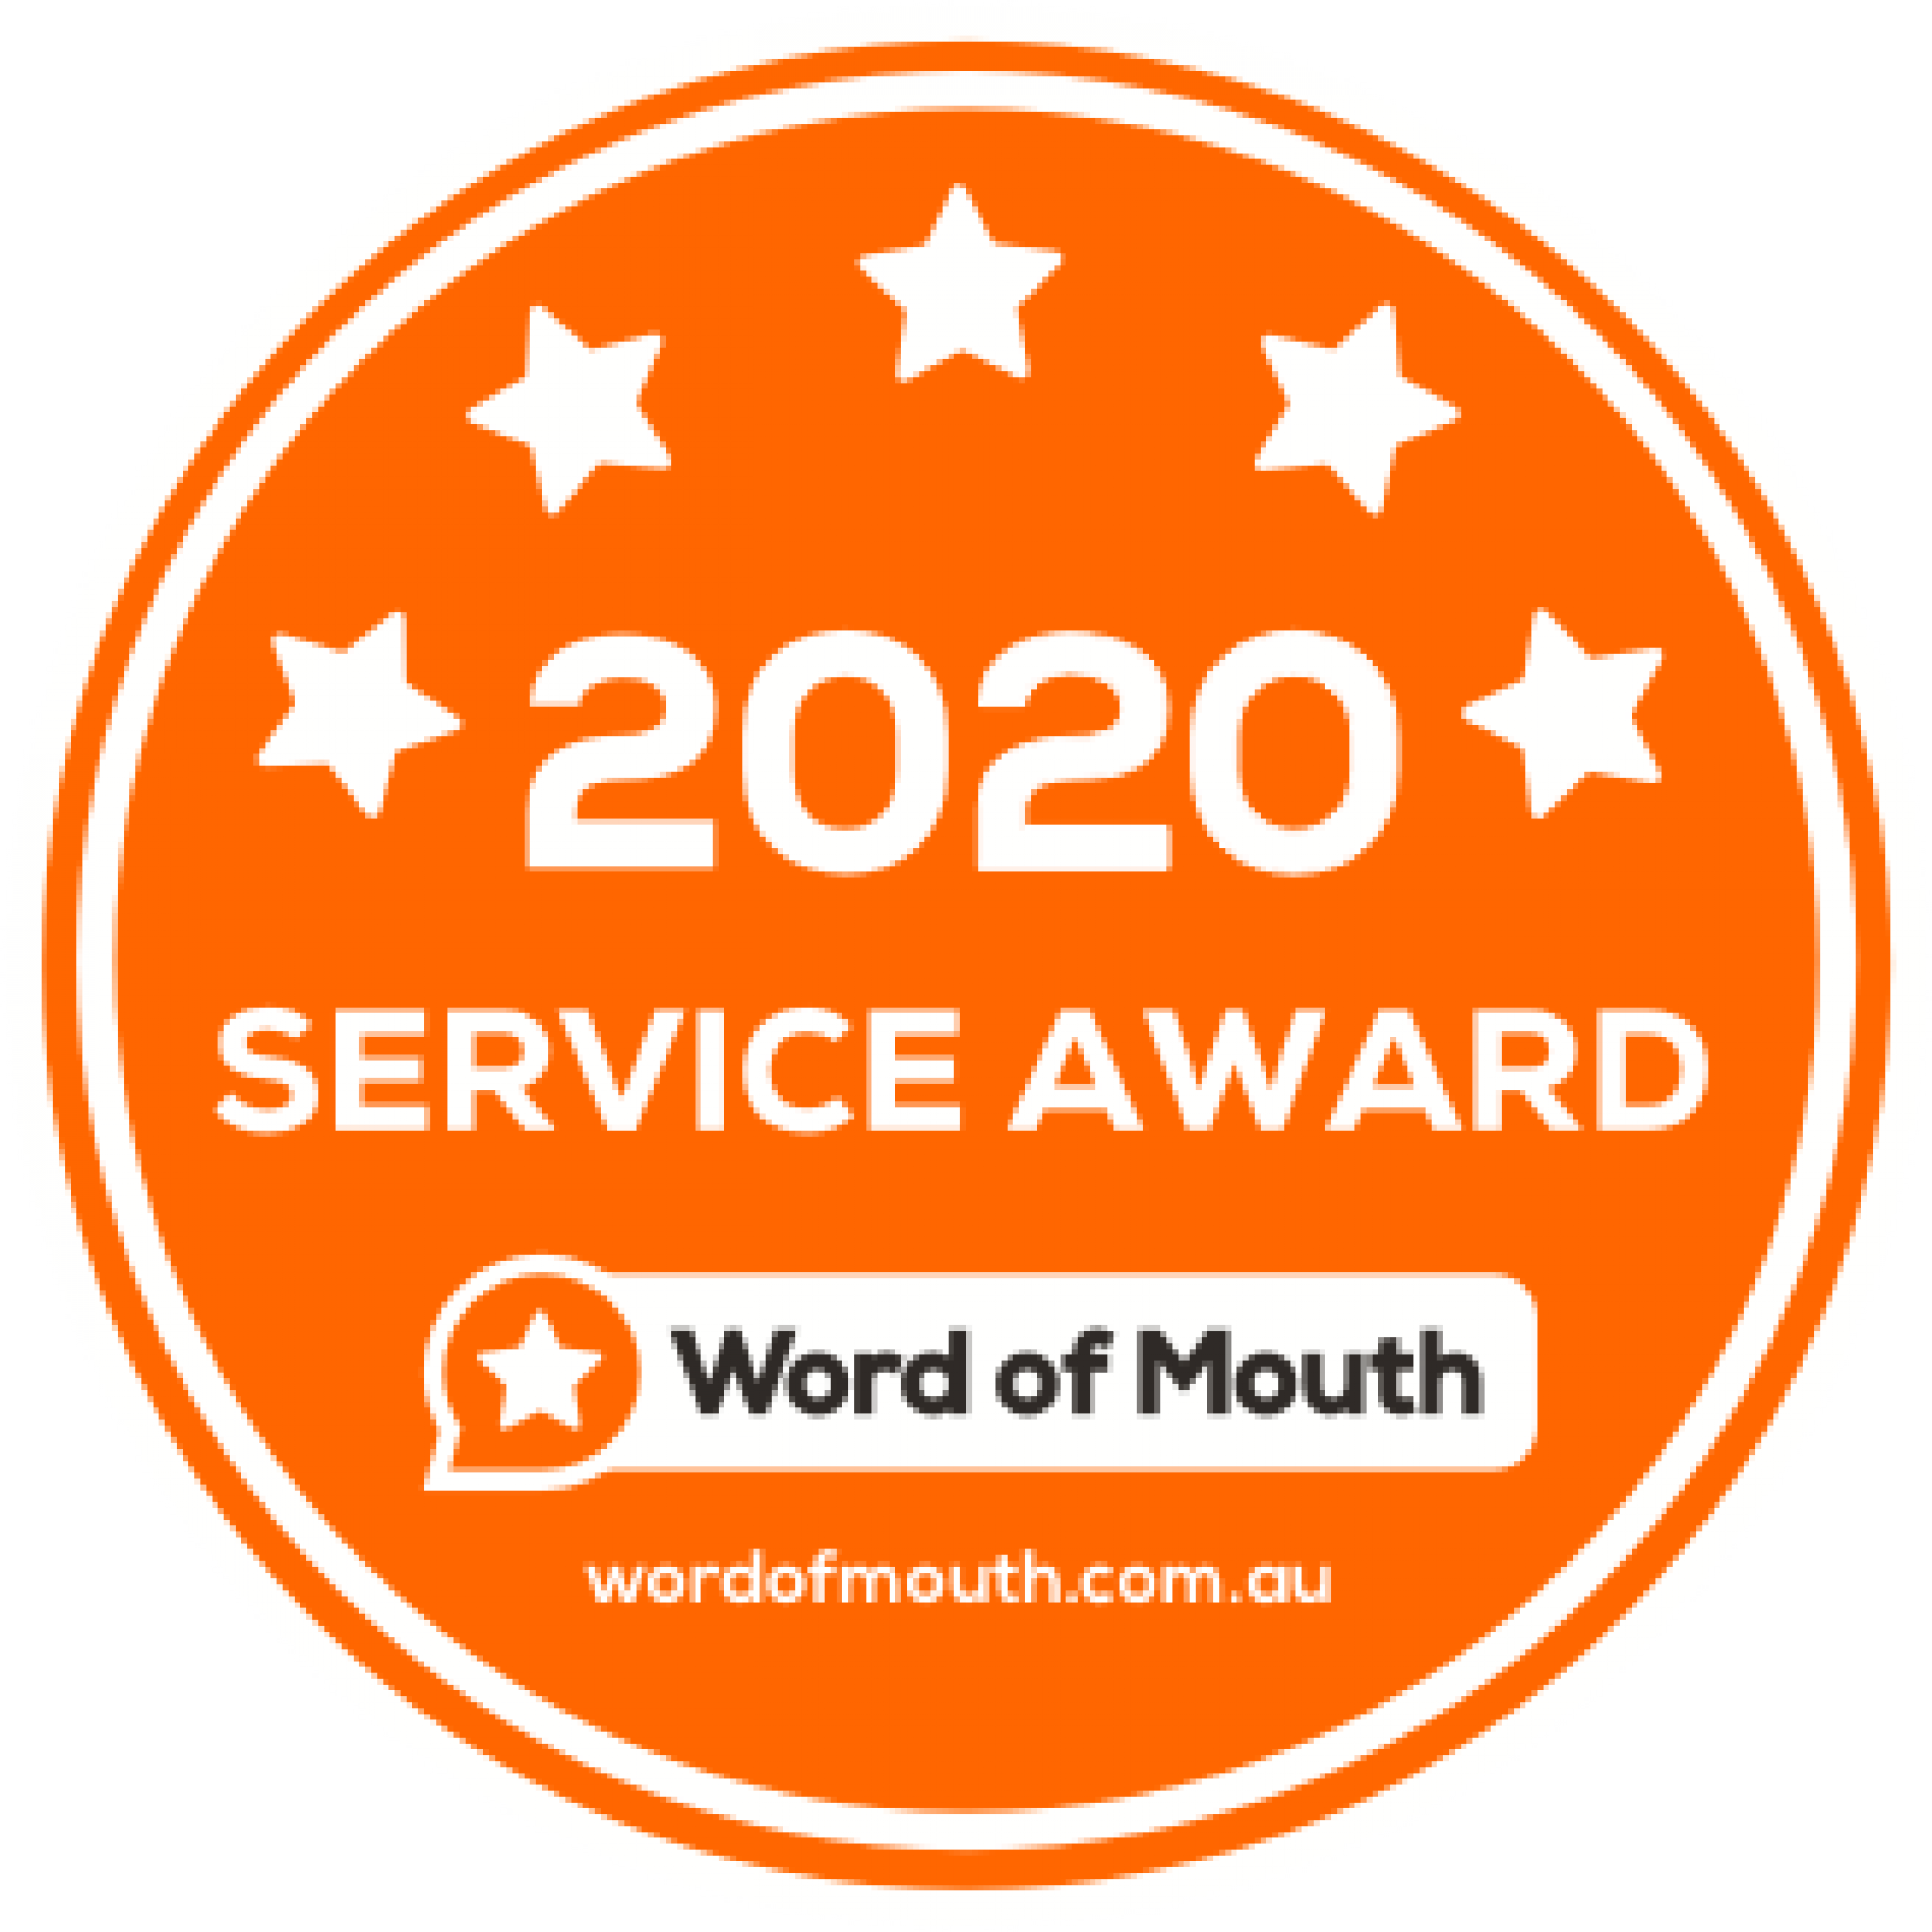 Word of Mouth 2020 Service Award